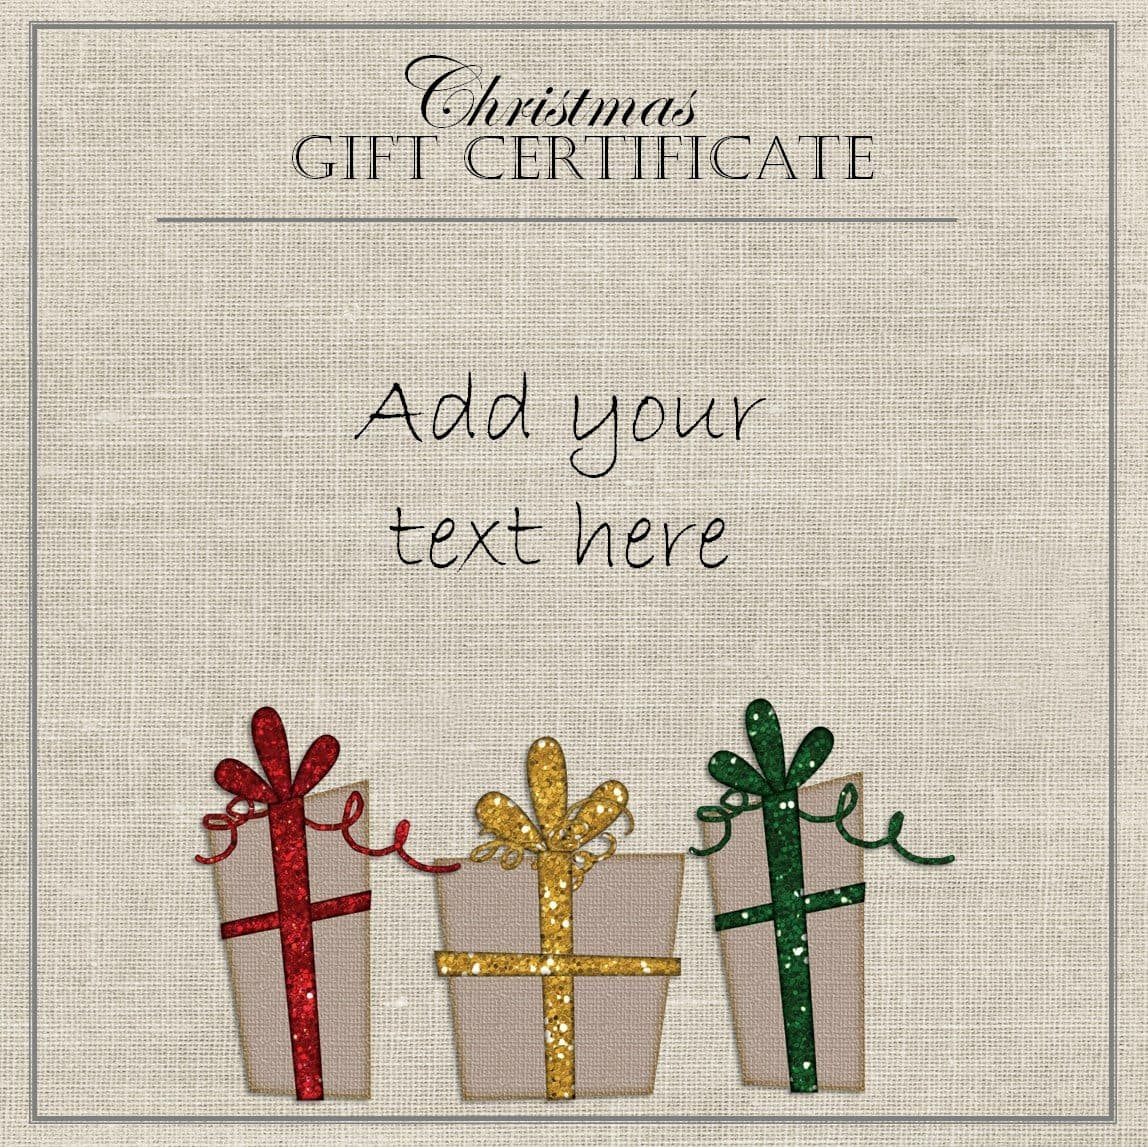 Free christmas gift certificate template customize online download elegant gift certificate template with three gifts with red yellow and green ribbons alramifo Image collections